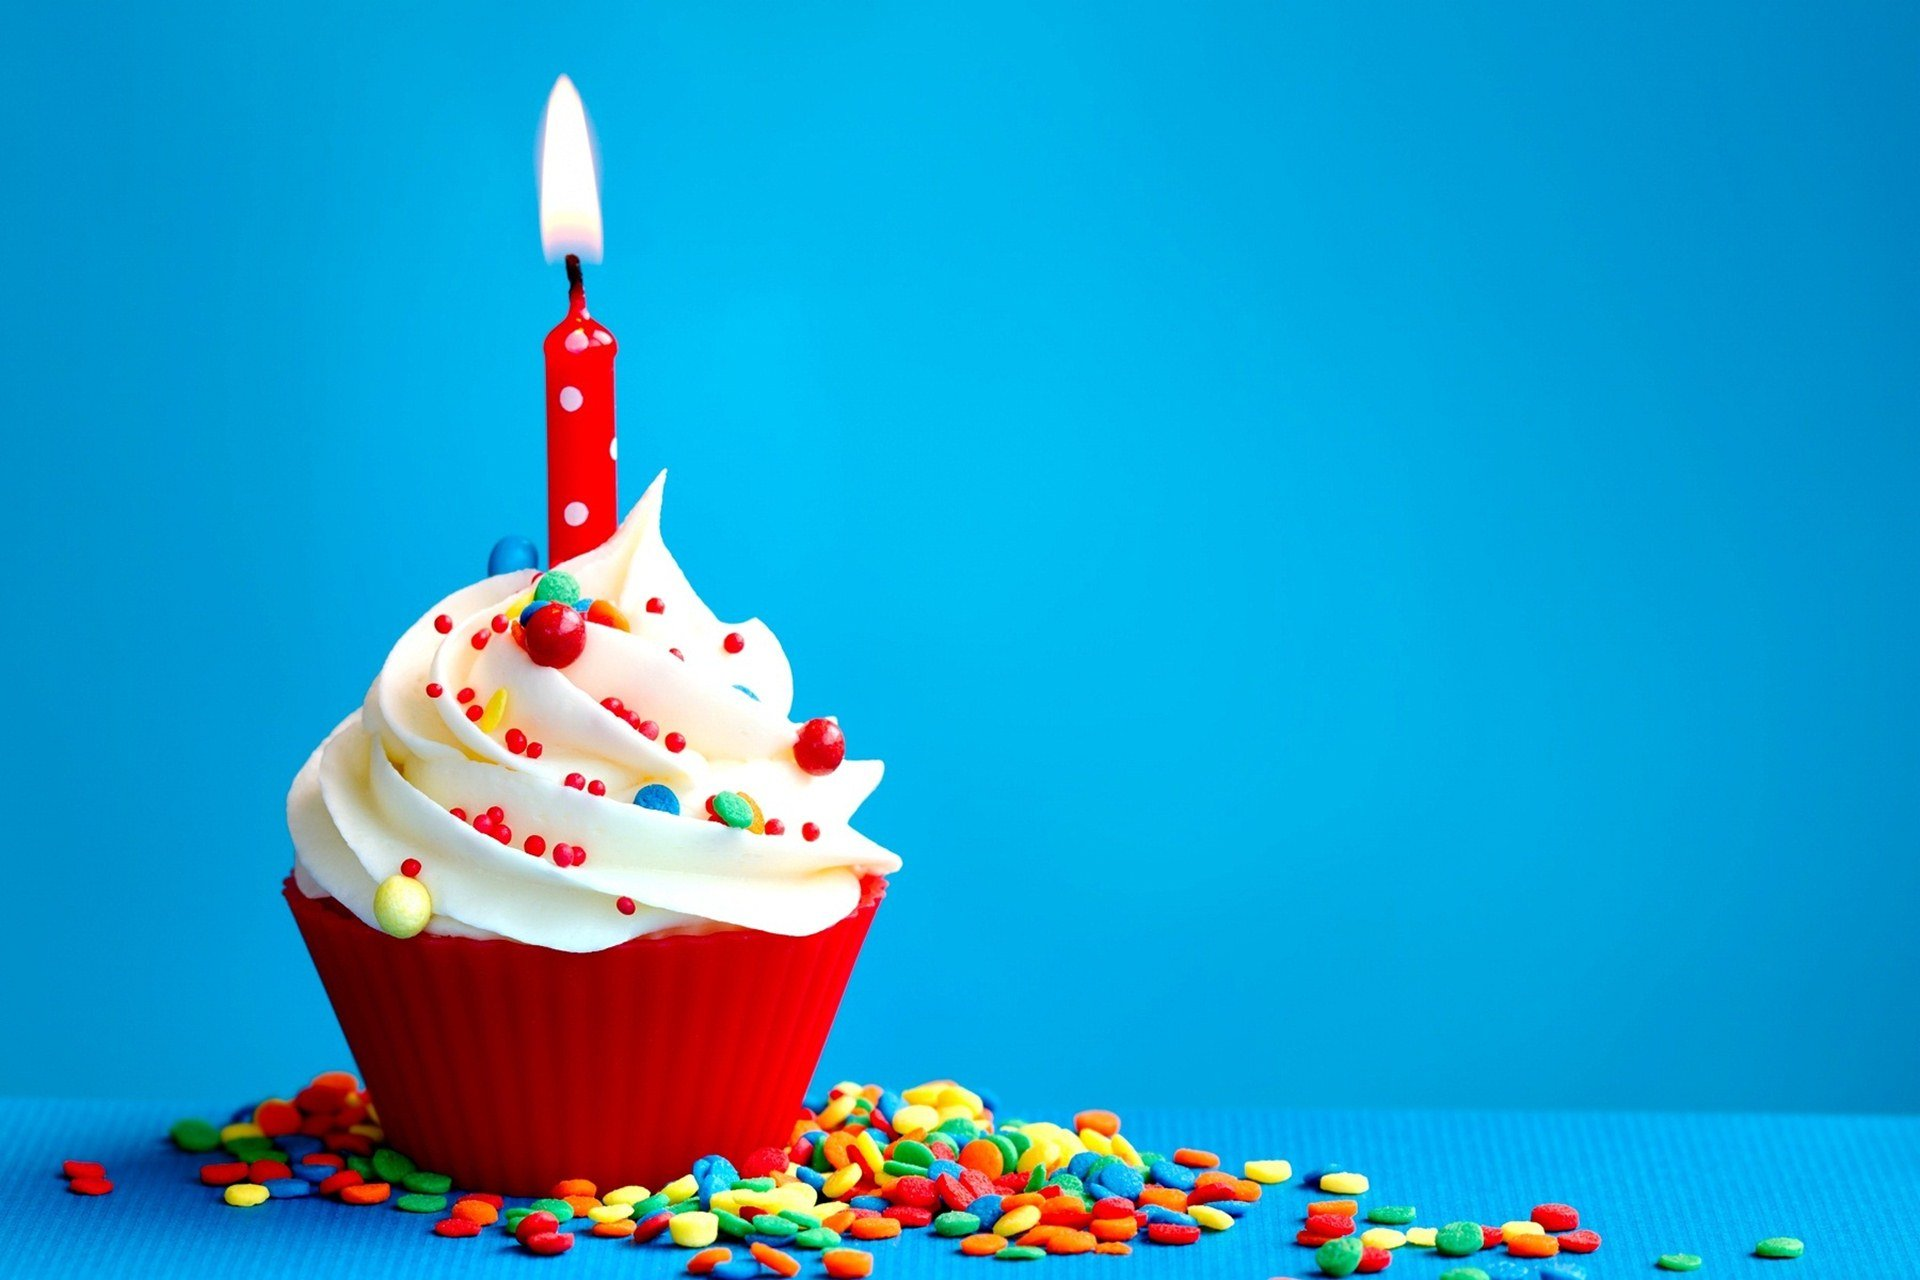 Happy Birthday Wallpaper for PC Full HD Pictures 1920x1280